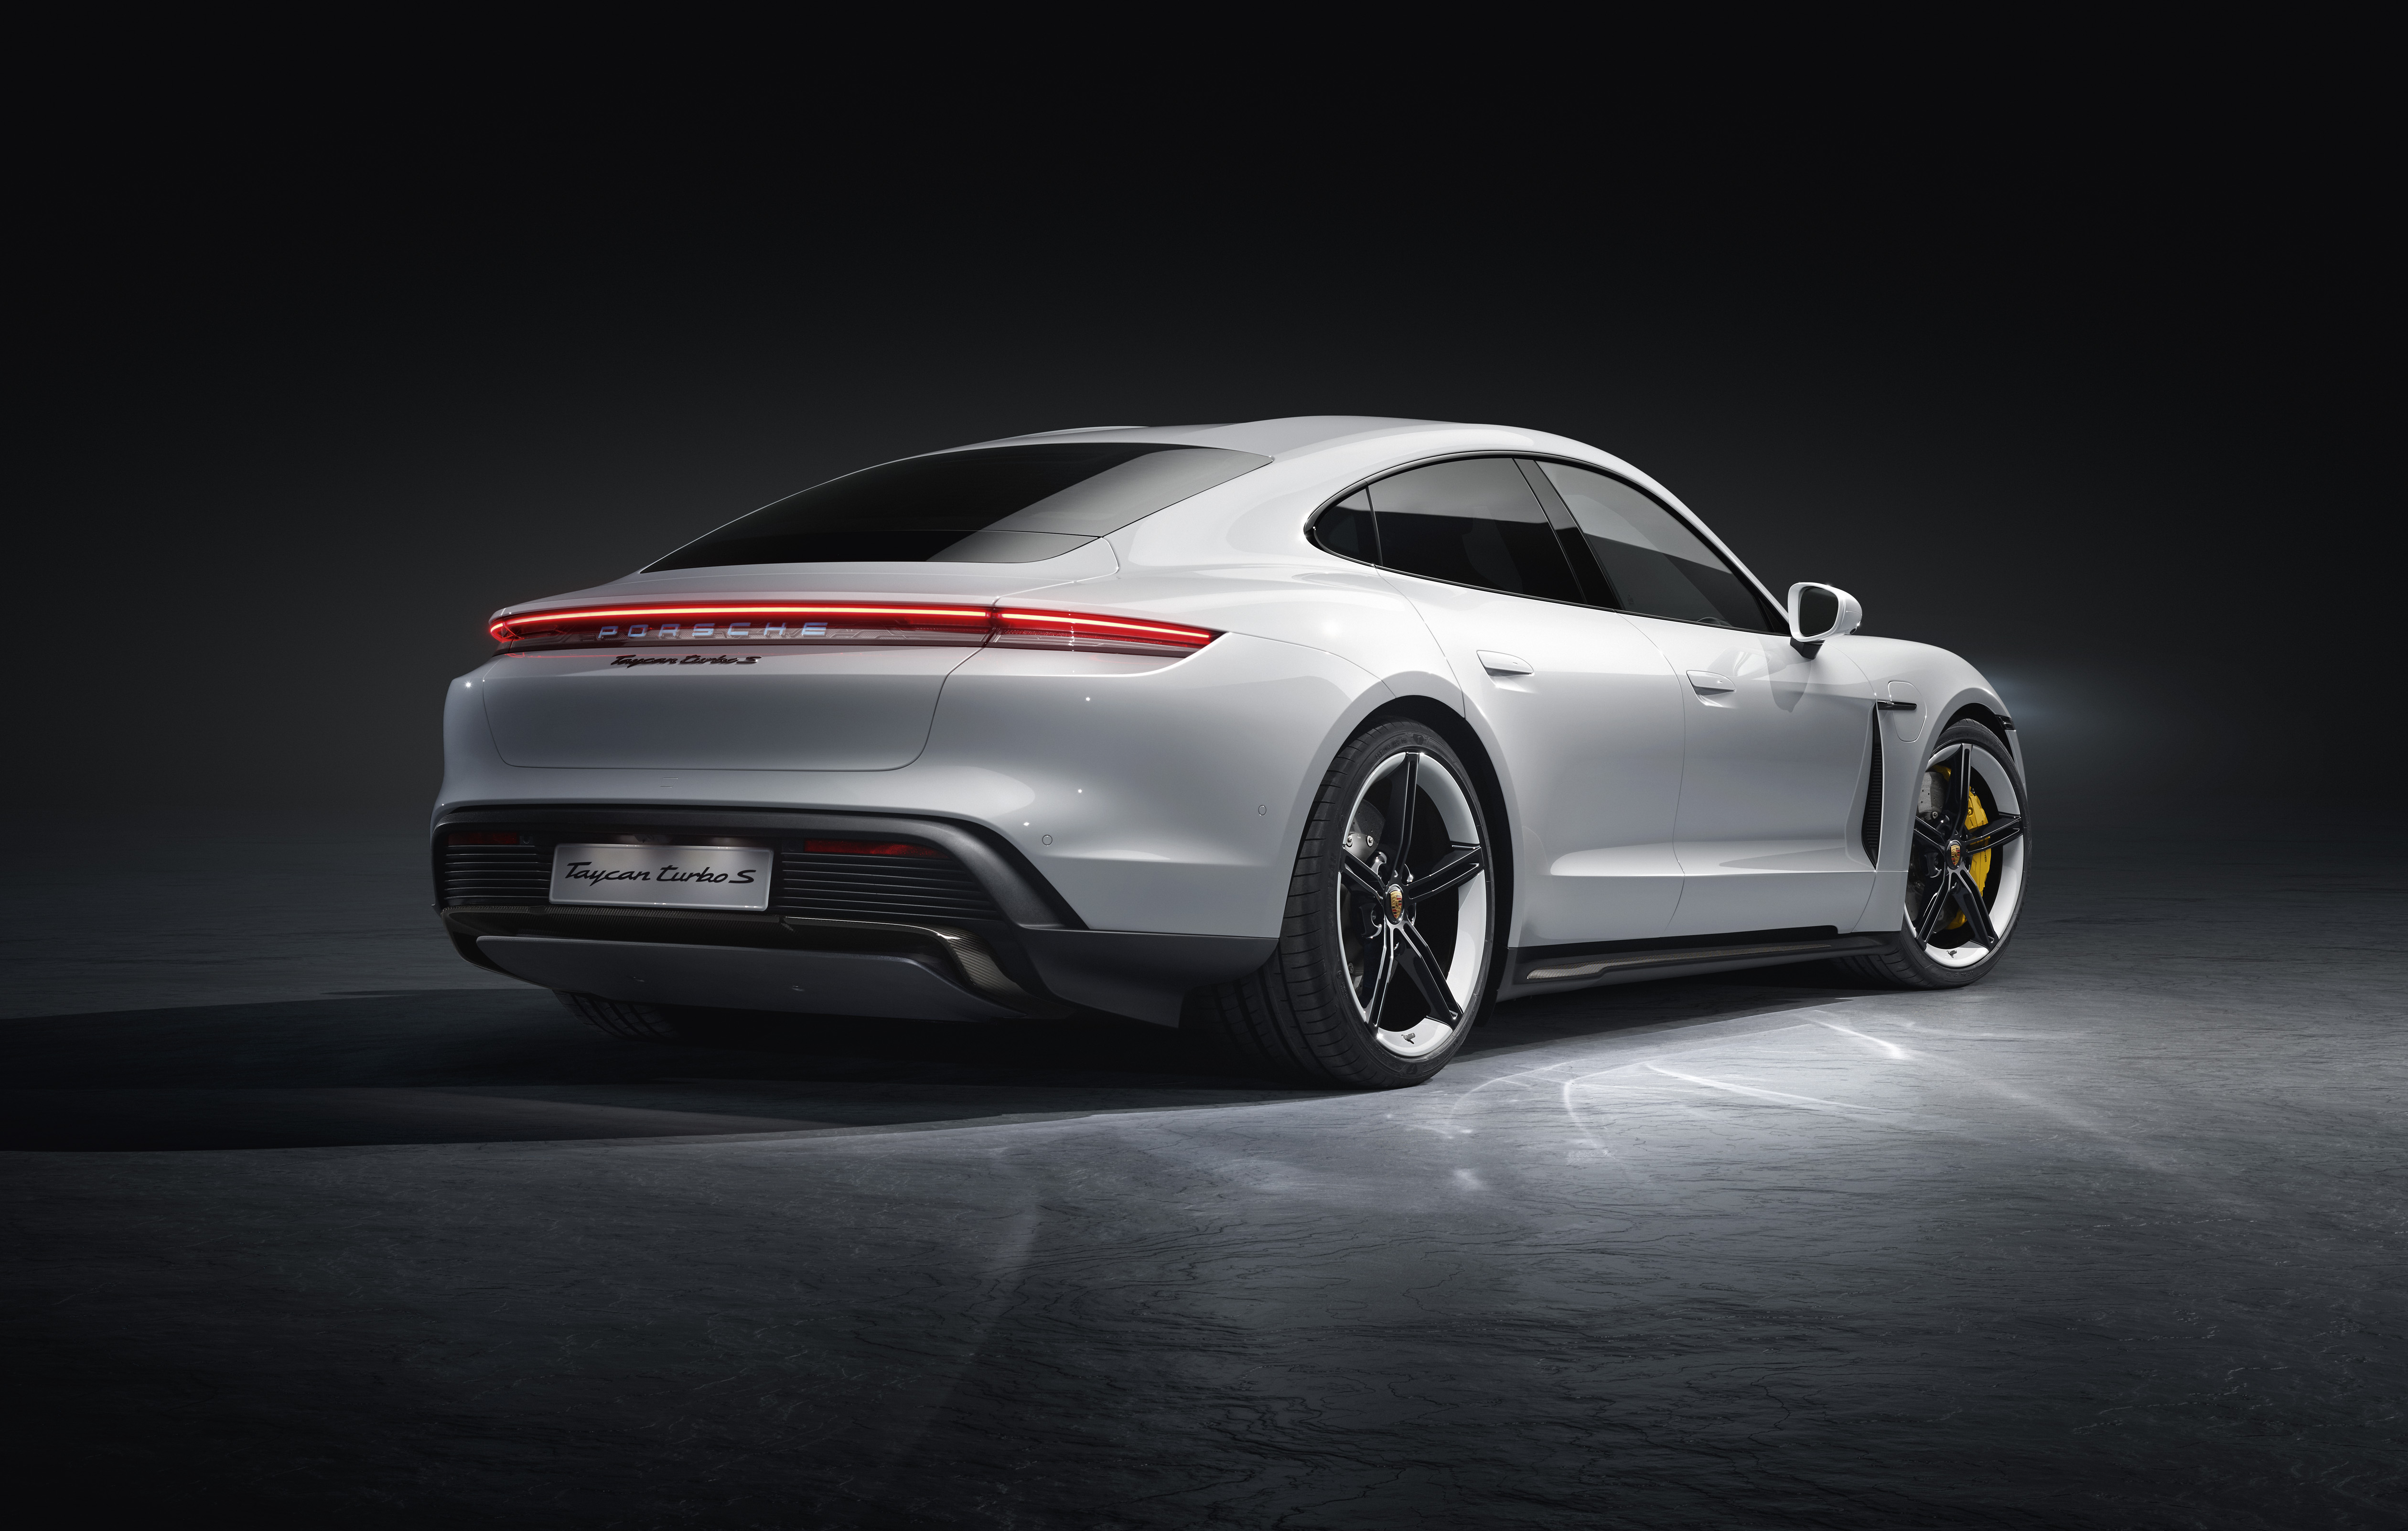 Porsche Taycan Turbo S 2019 Rear, HD Cars, 4k Wallpapers